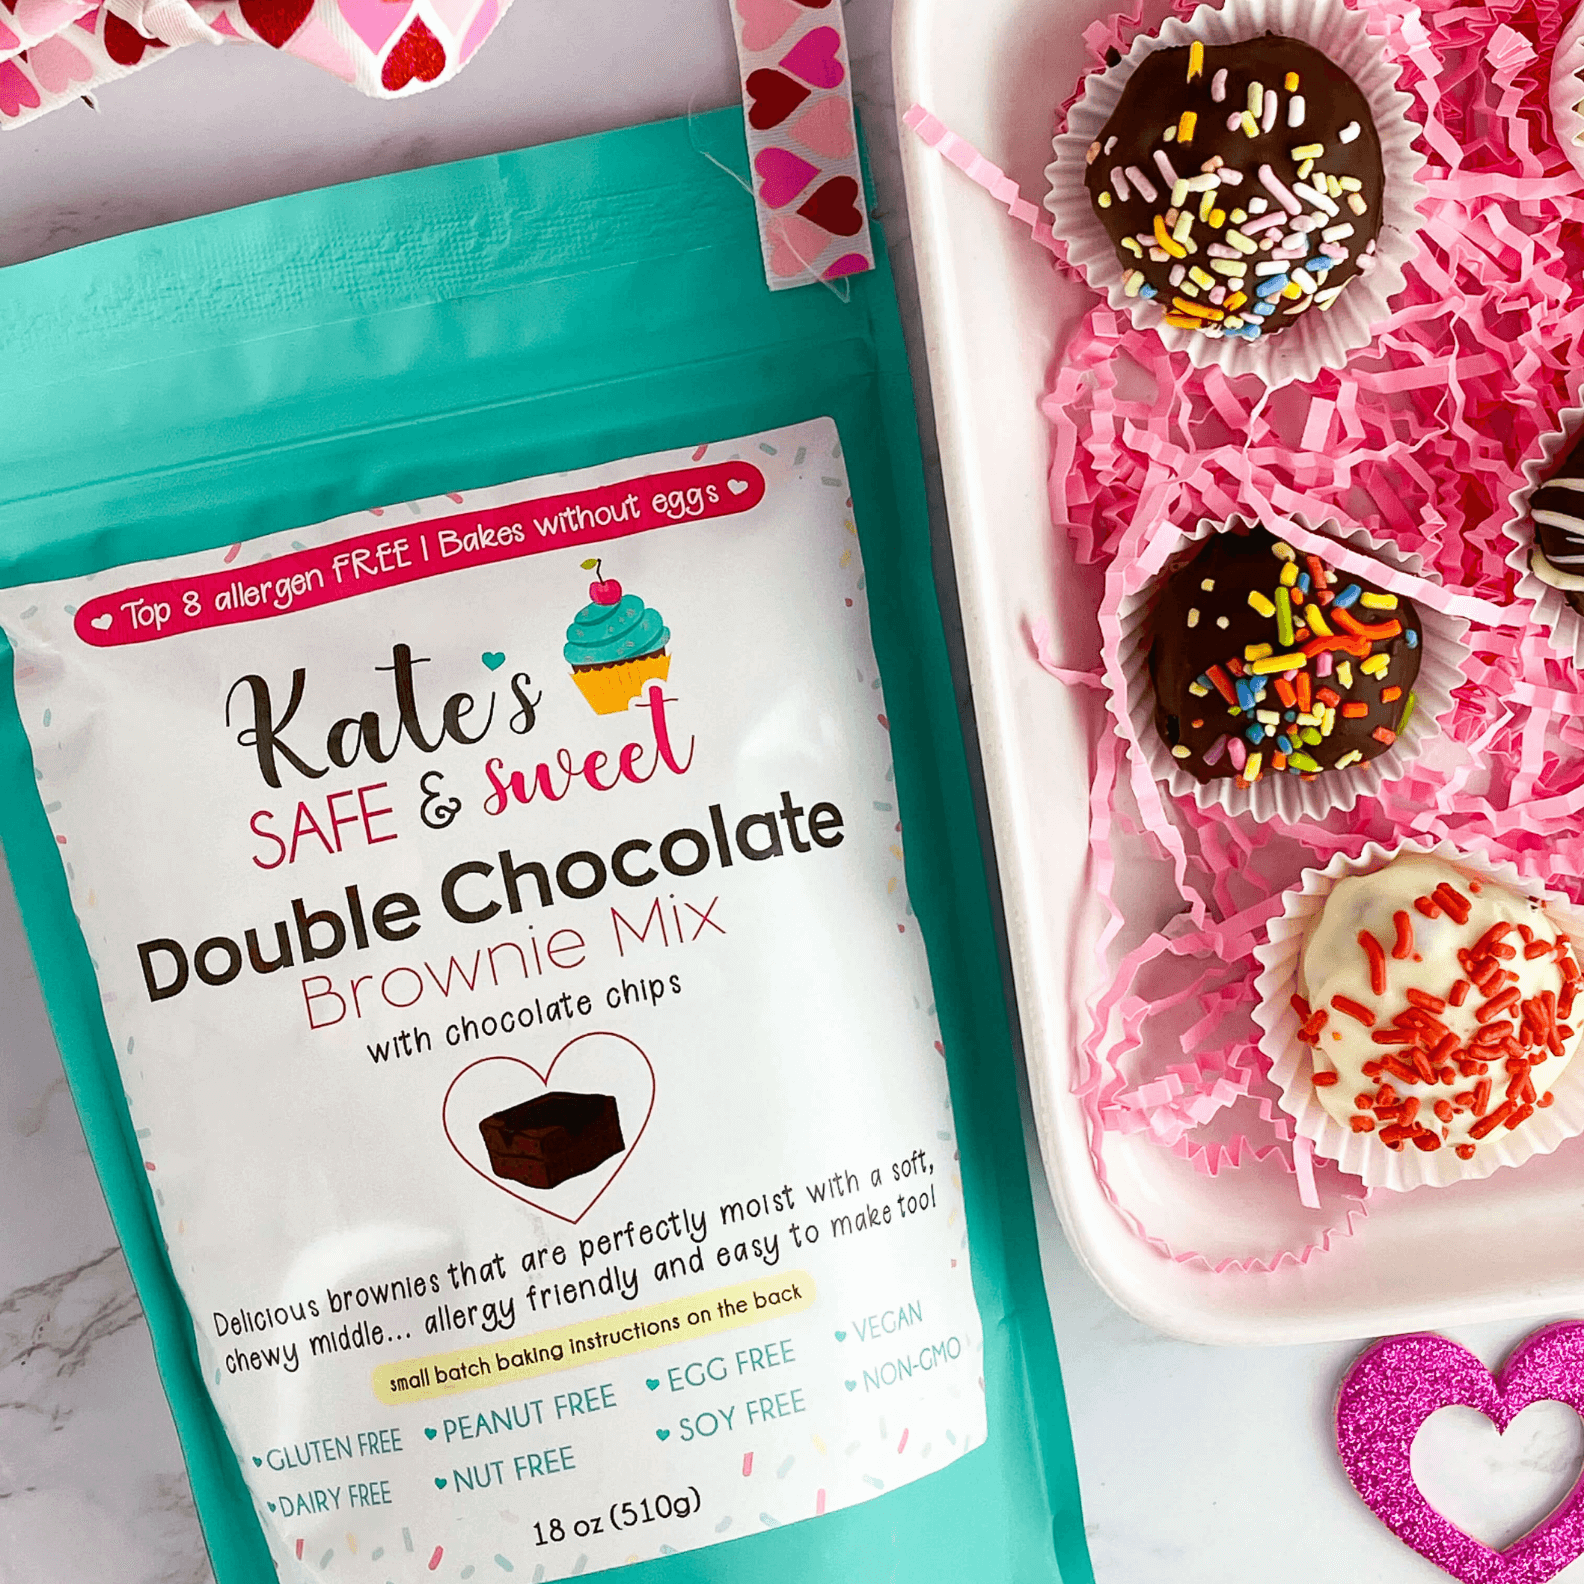 Kate's Safe and Sweet - Brownie Truffle with Mix